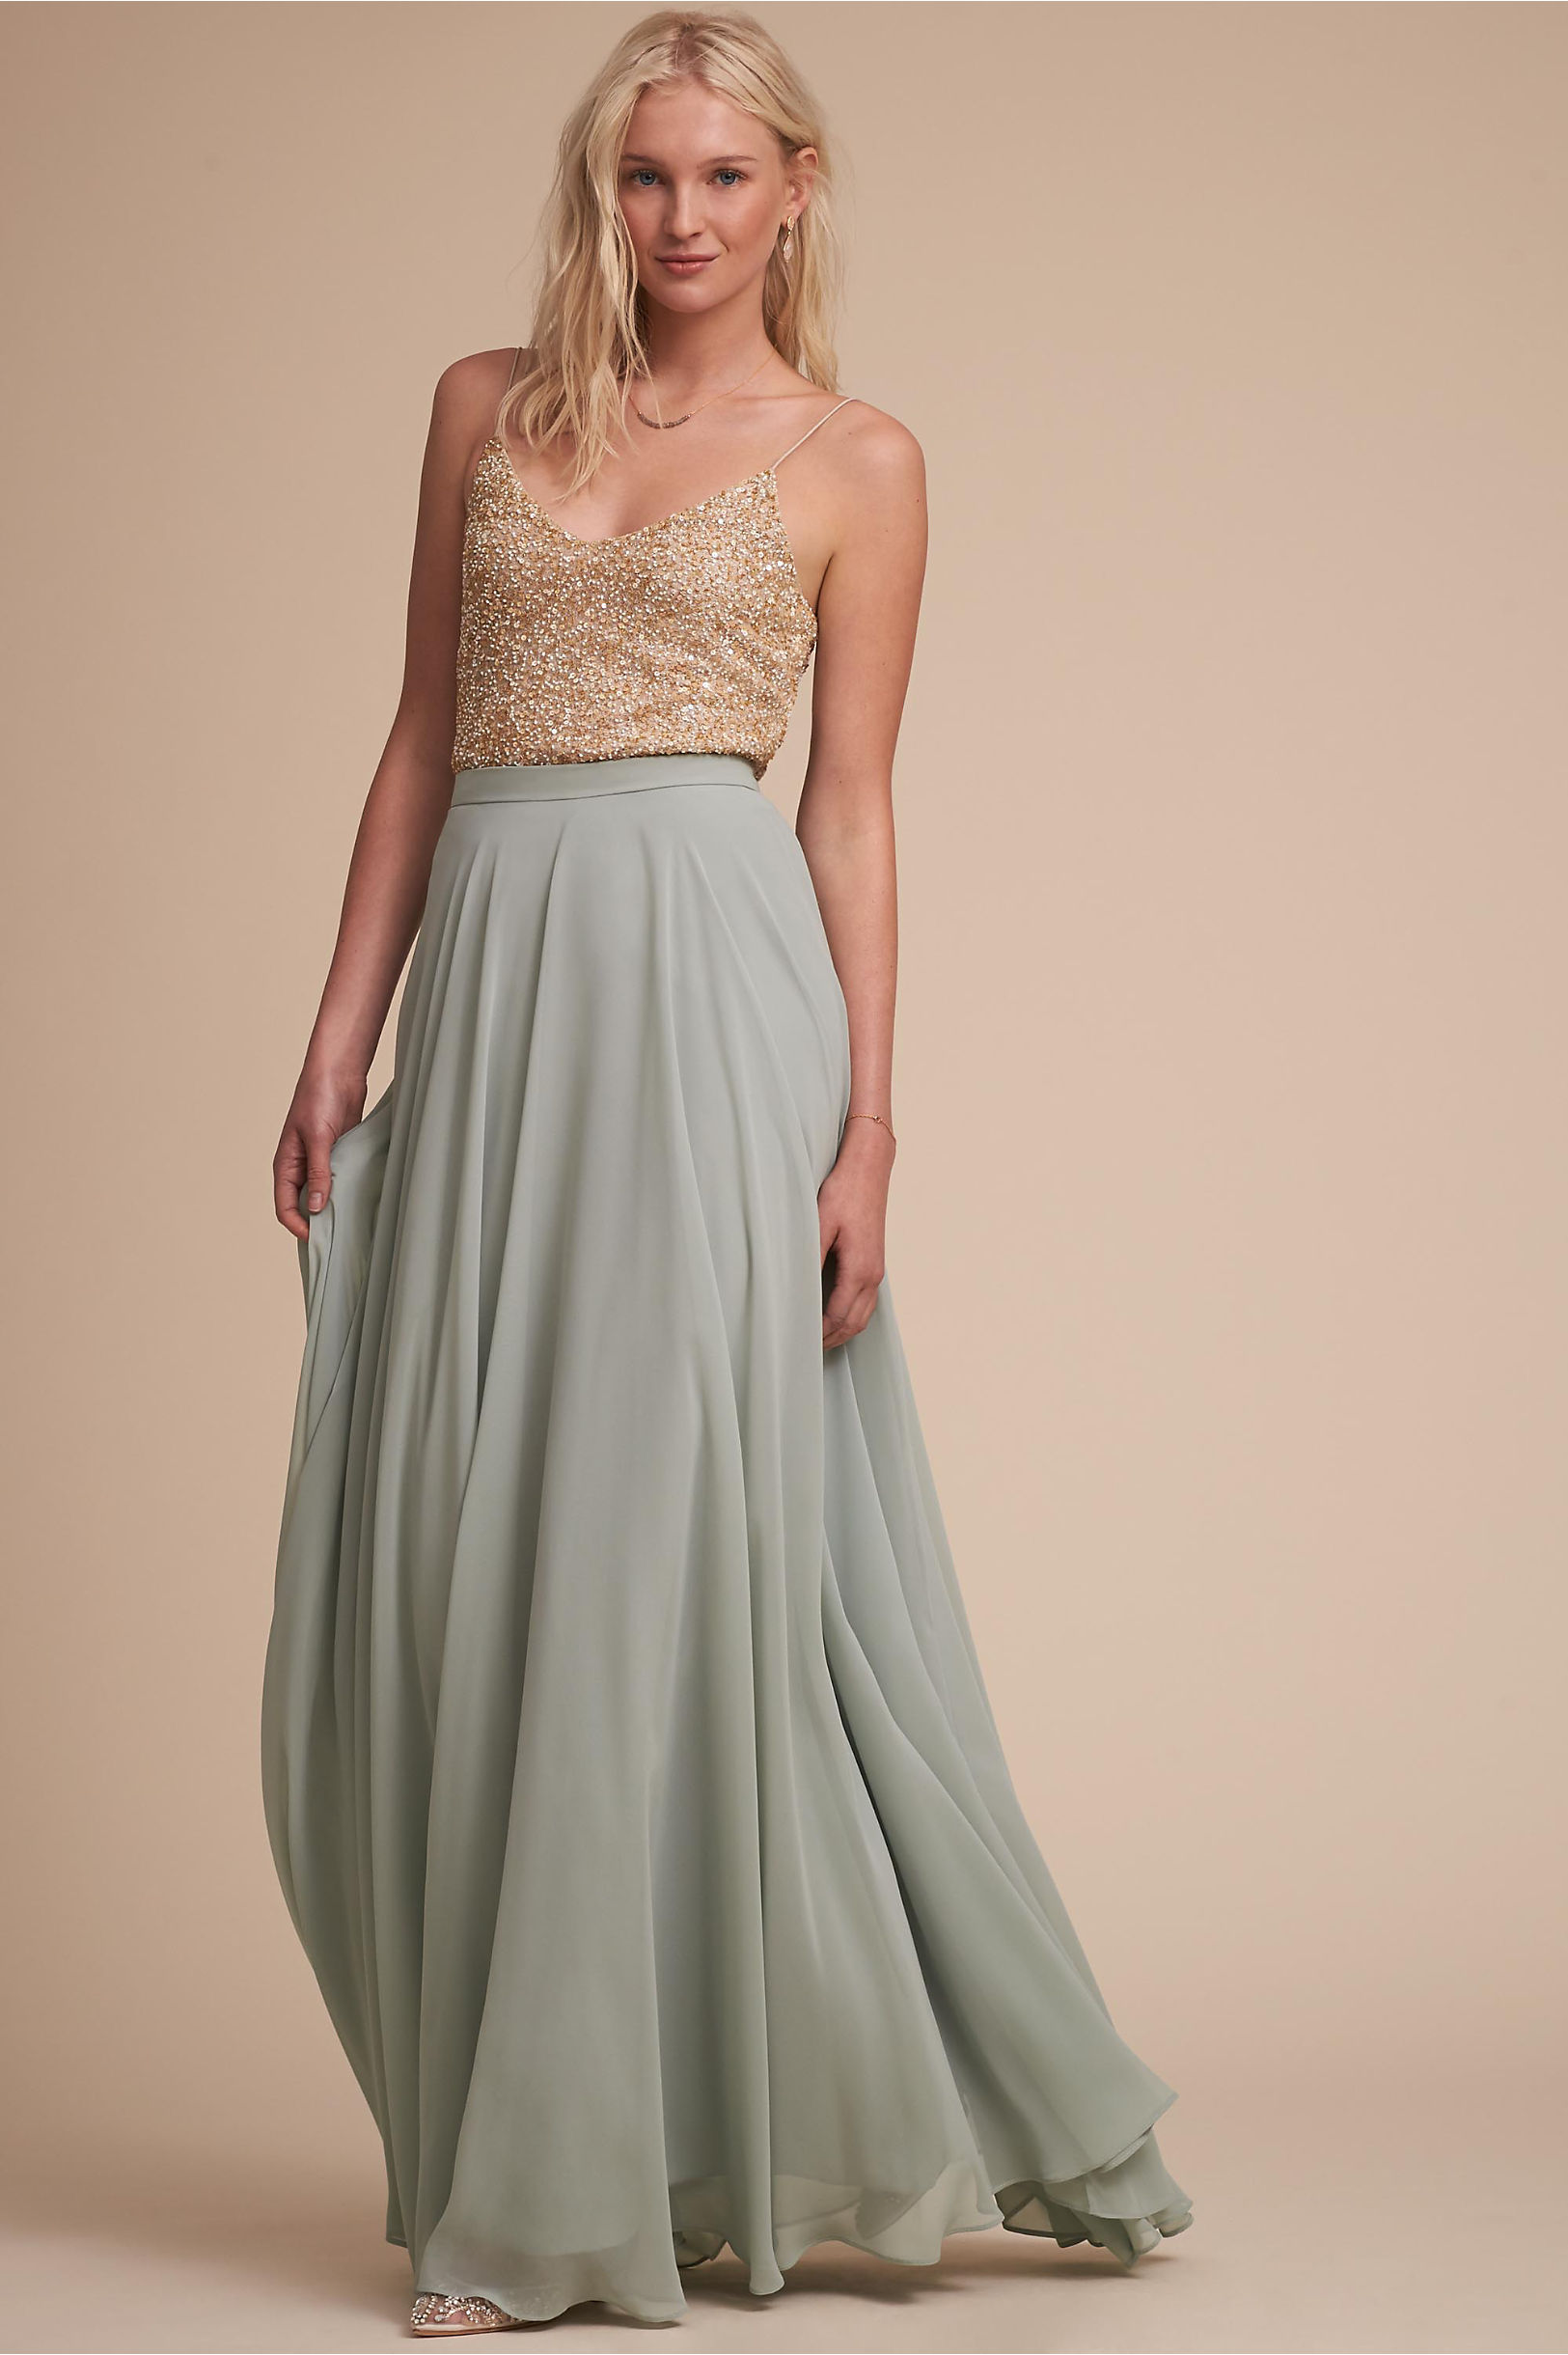 Metallic silver gold bridesmaid dresses bhldn allegro top hampton skirt ombrellifo Choice Image